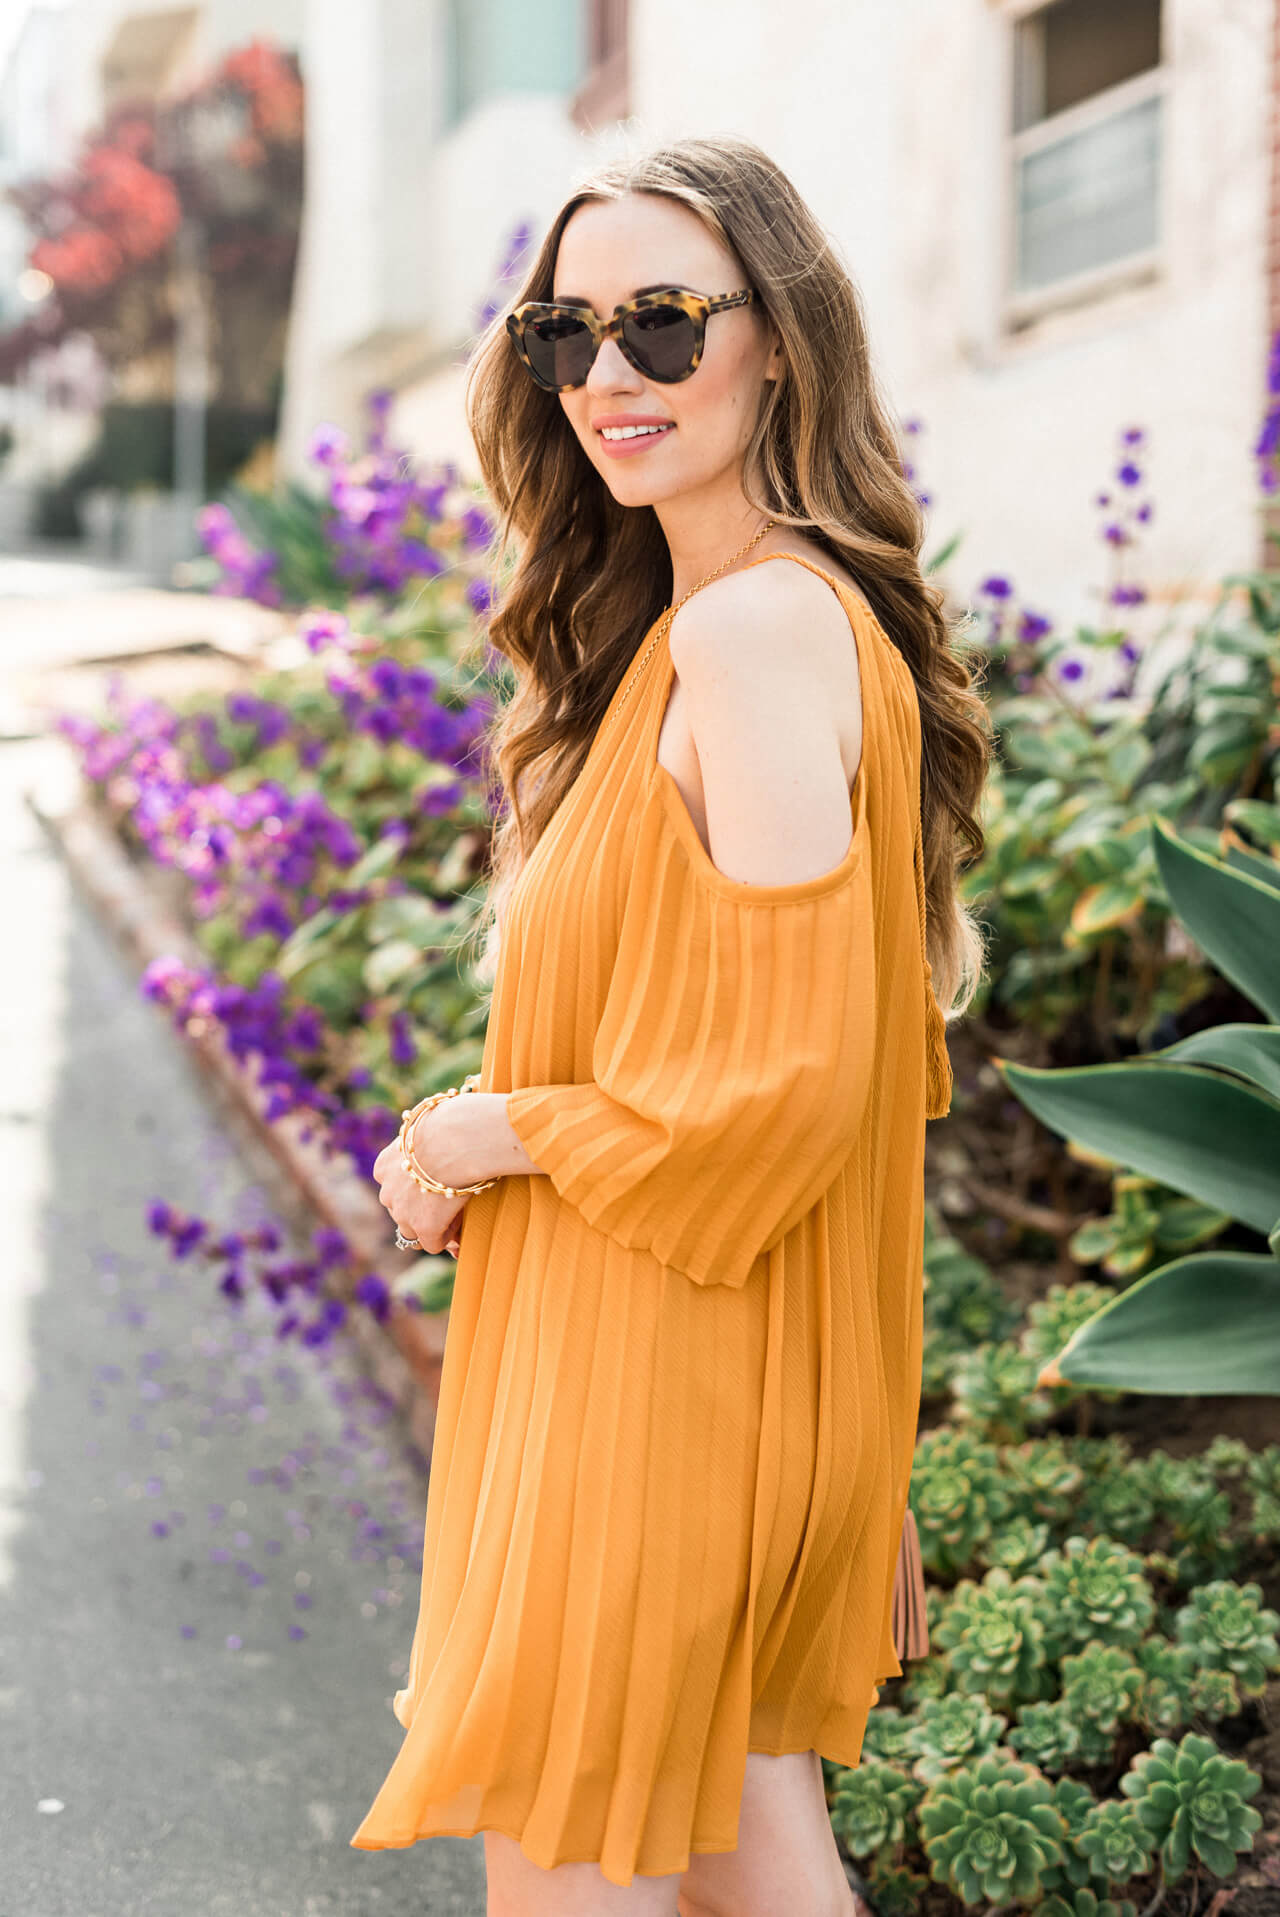 soaking up this cold-shoulder trend - M Loves M @marmar